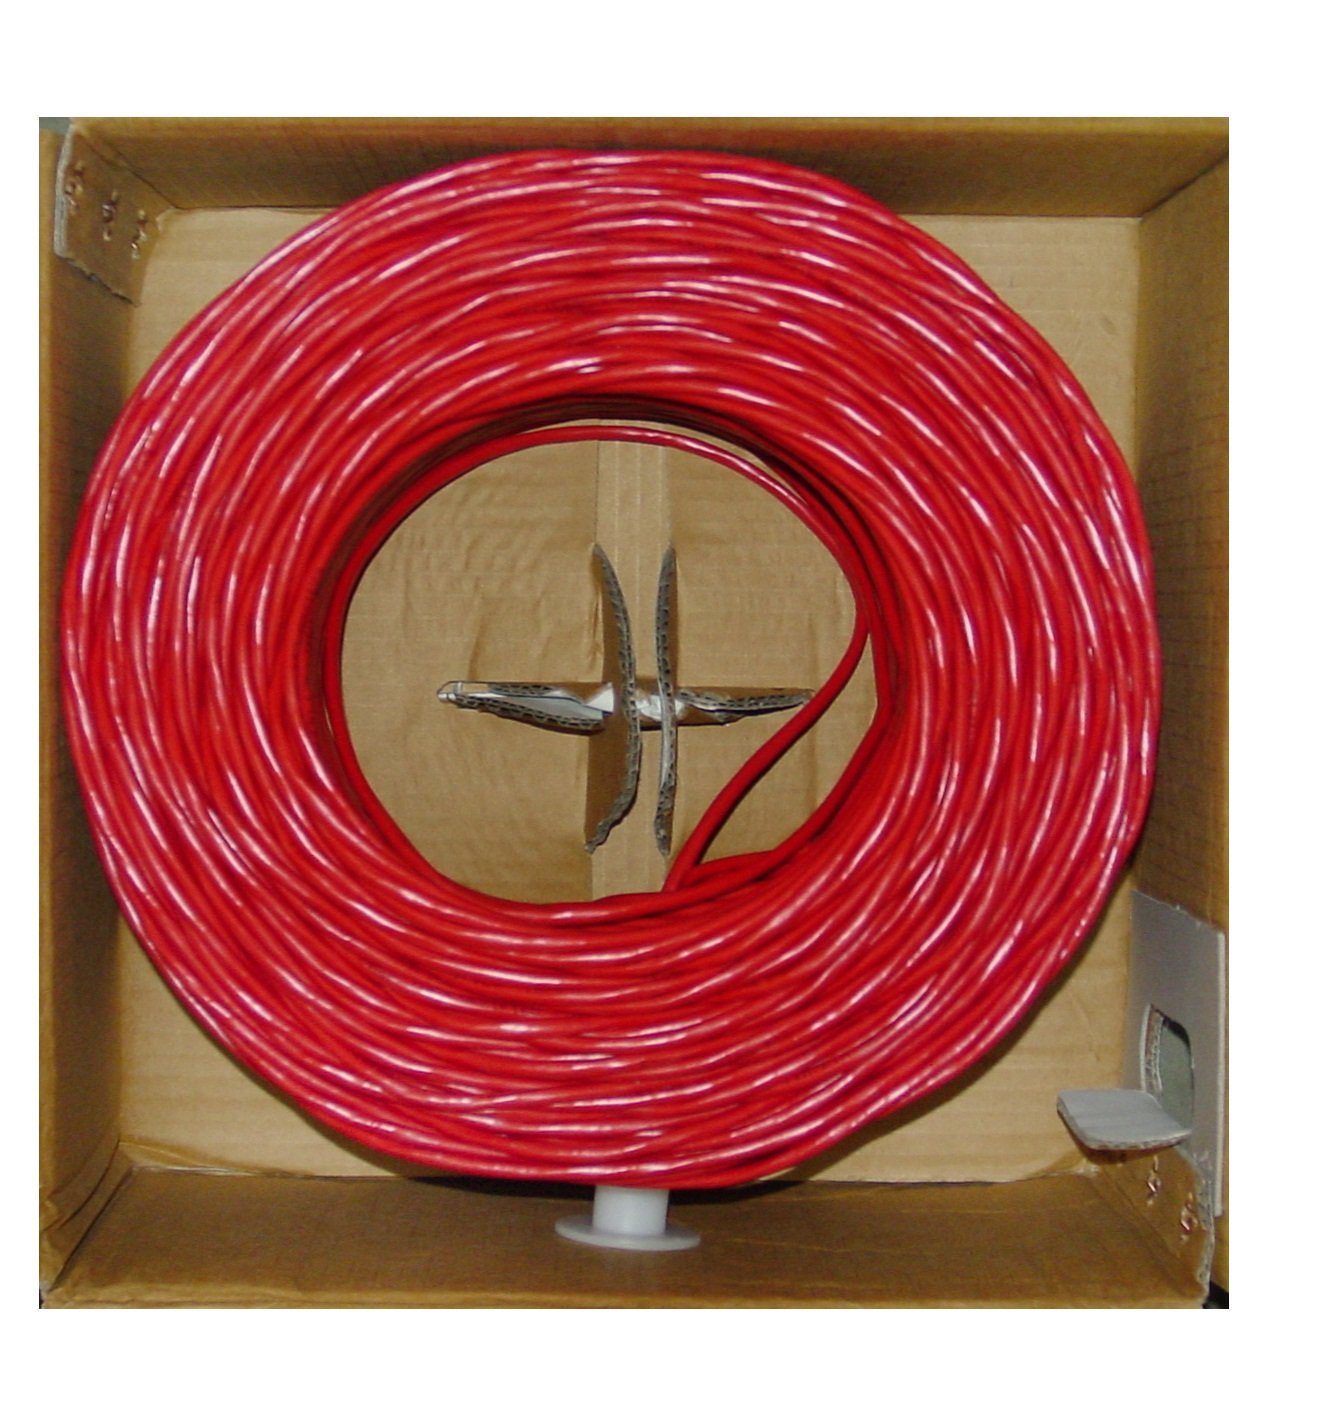 Amazon.com: Aurum Cables CAT6 - 24 AWG - 500 ft Red Ethernet Network Cable - Copper Clad Aluminum (CCA) - With Crimp Tool - 550 Mhz - UTP - Pull Out box ...